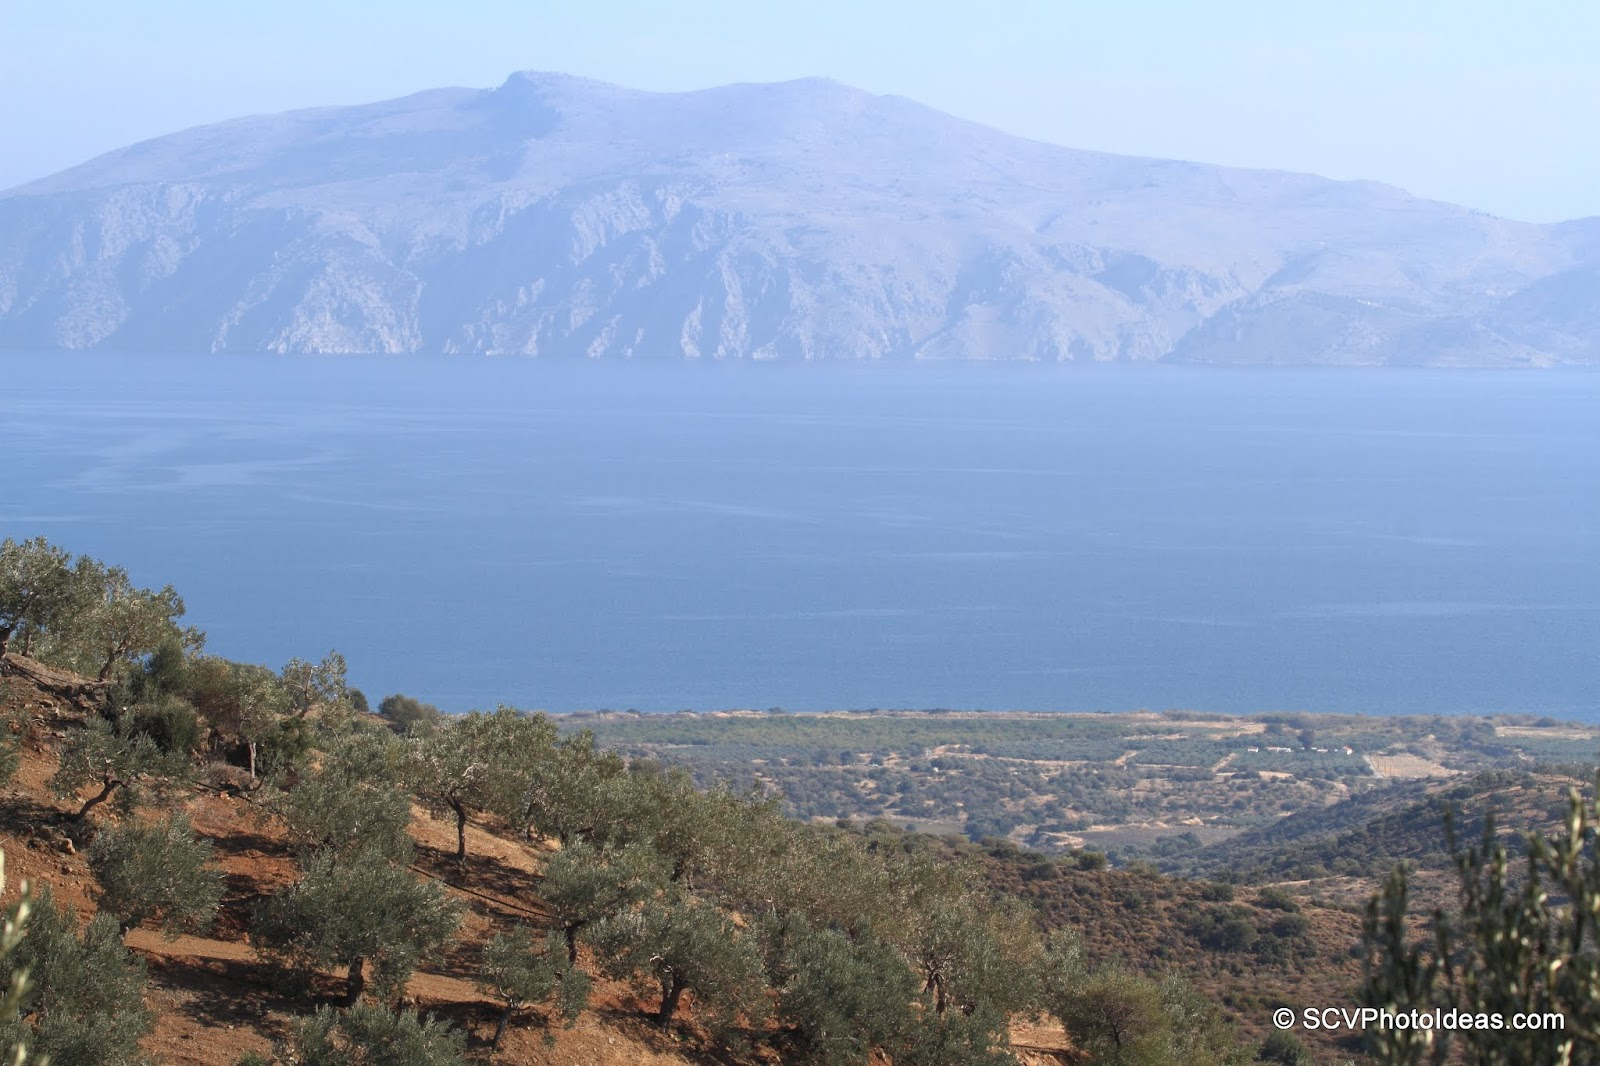 The bay of Hydra from above